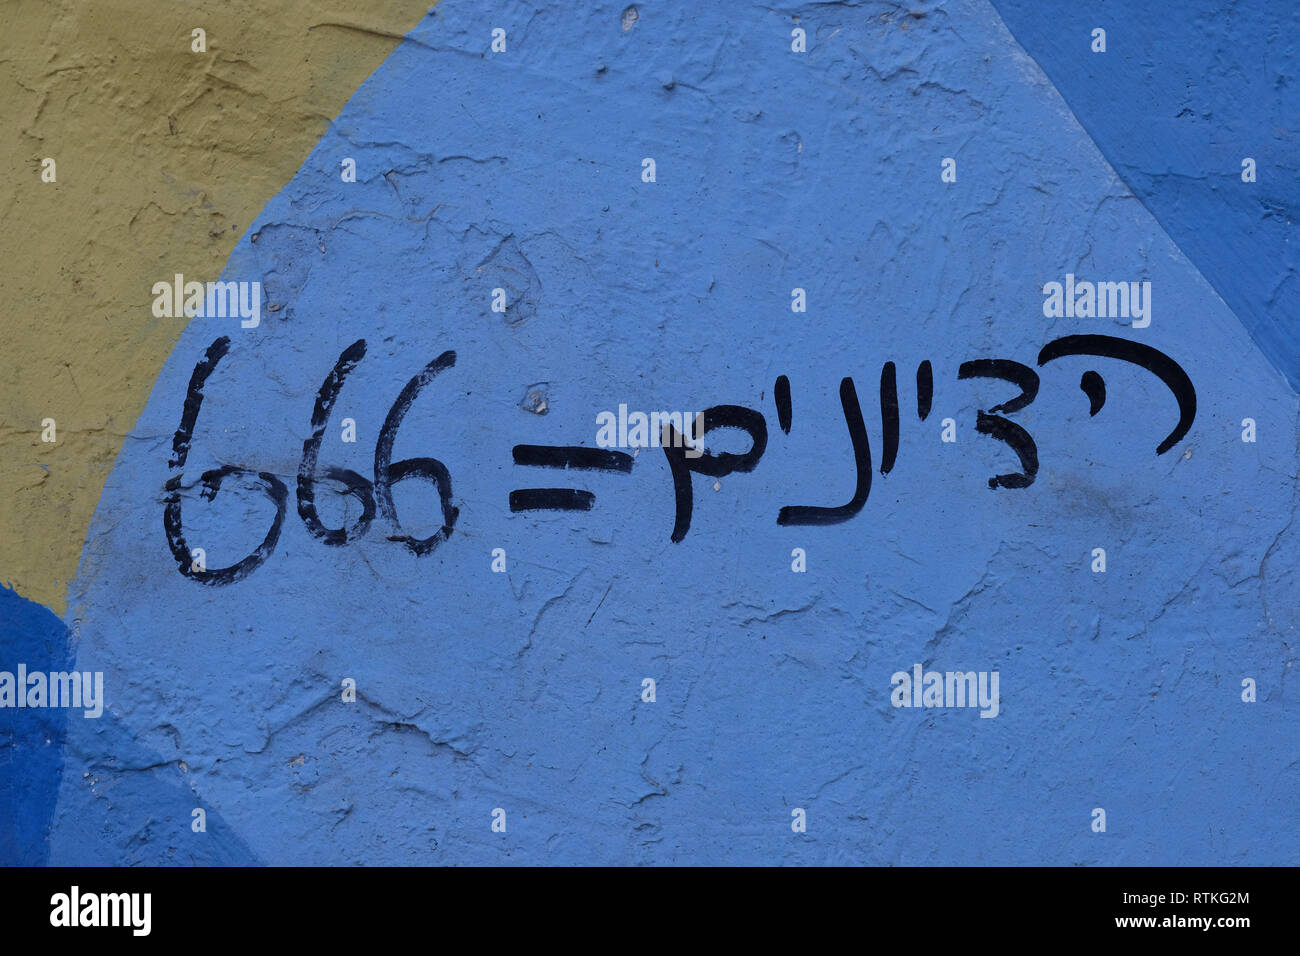 An anti-Zionist writing in Hebrew sprayed in the wall compares Zionism to  the number 666 which represents the devil in Mea Shearim ultra orthodox neighborhood in West Jerusalem Israel - Stock Image